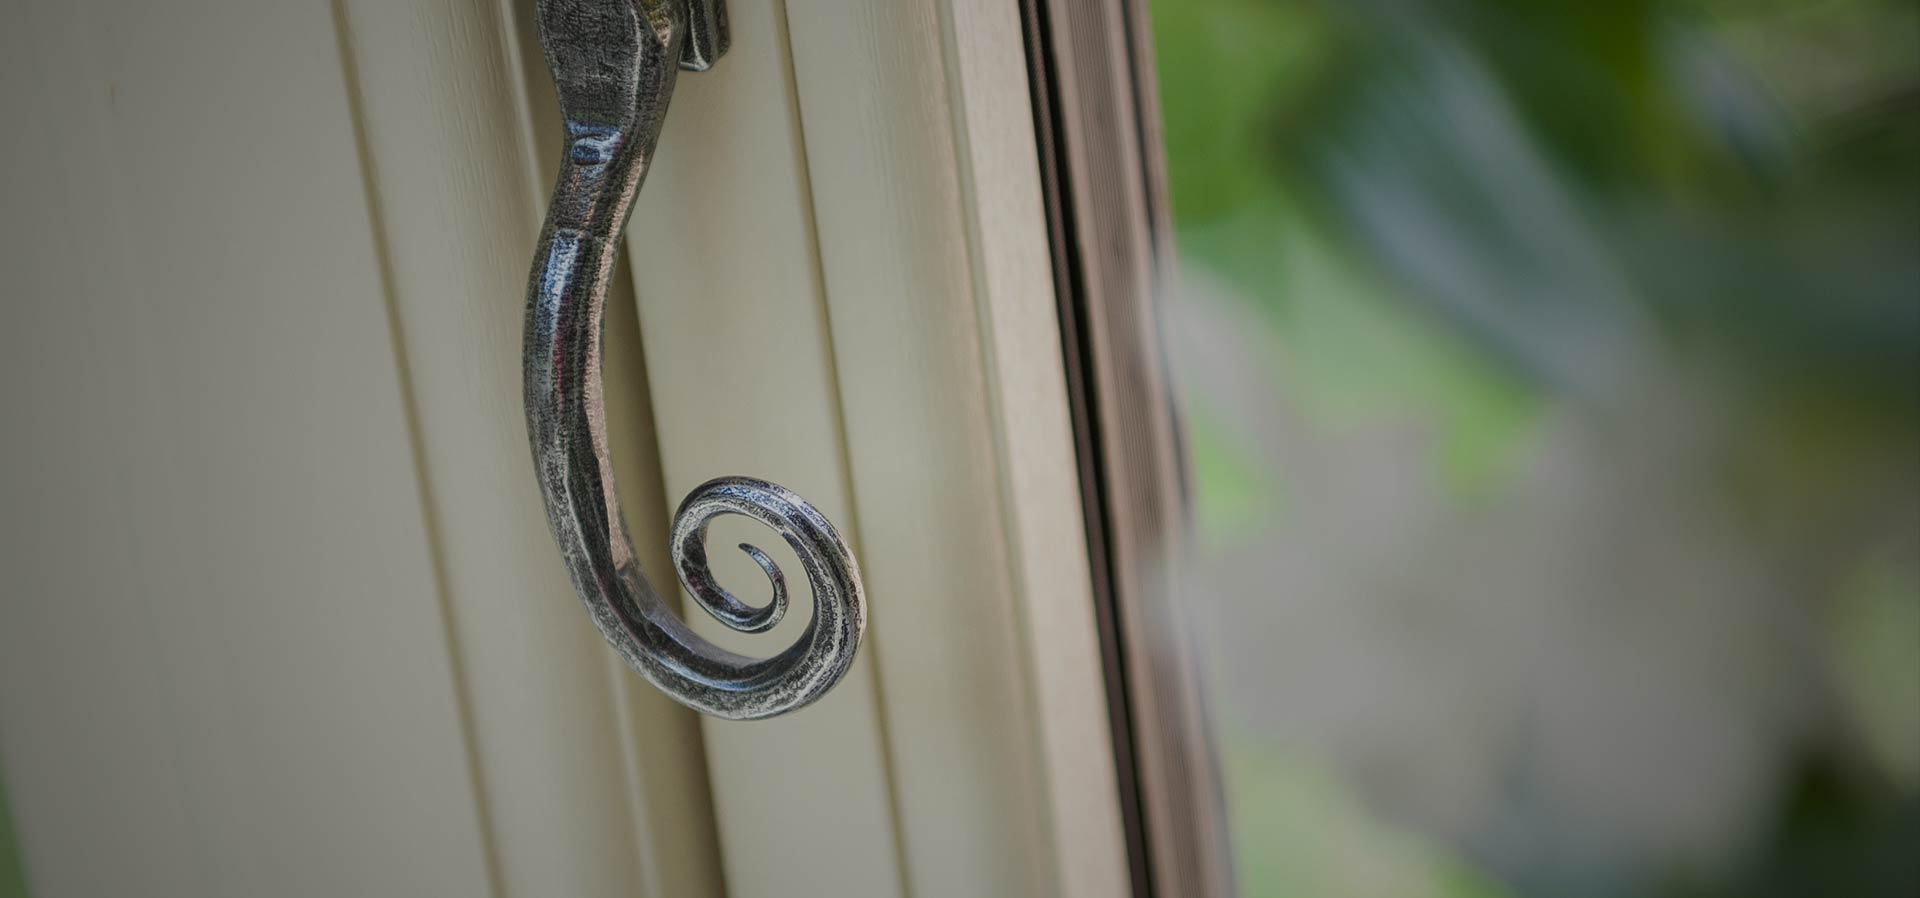 Residence 9 upvc window with monkey tail handle